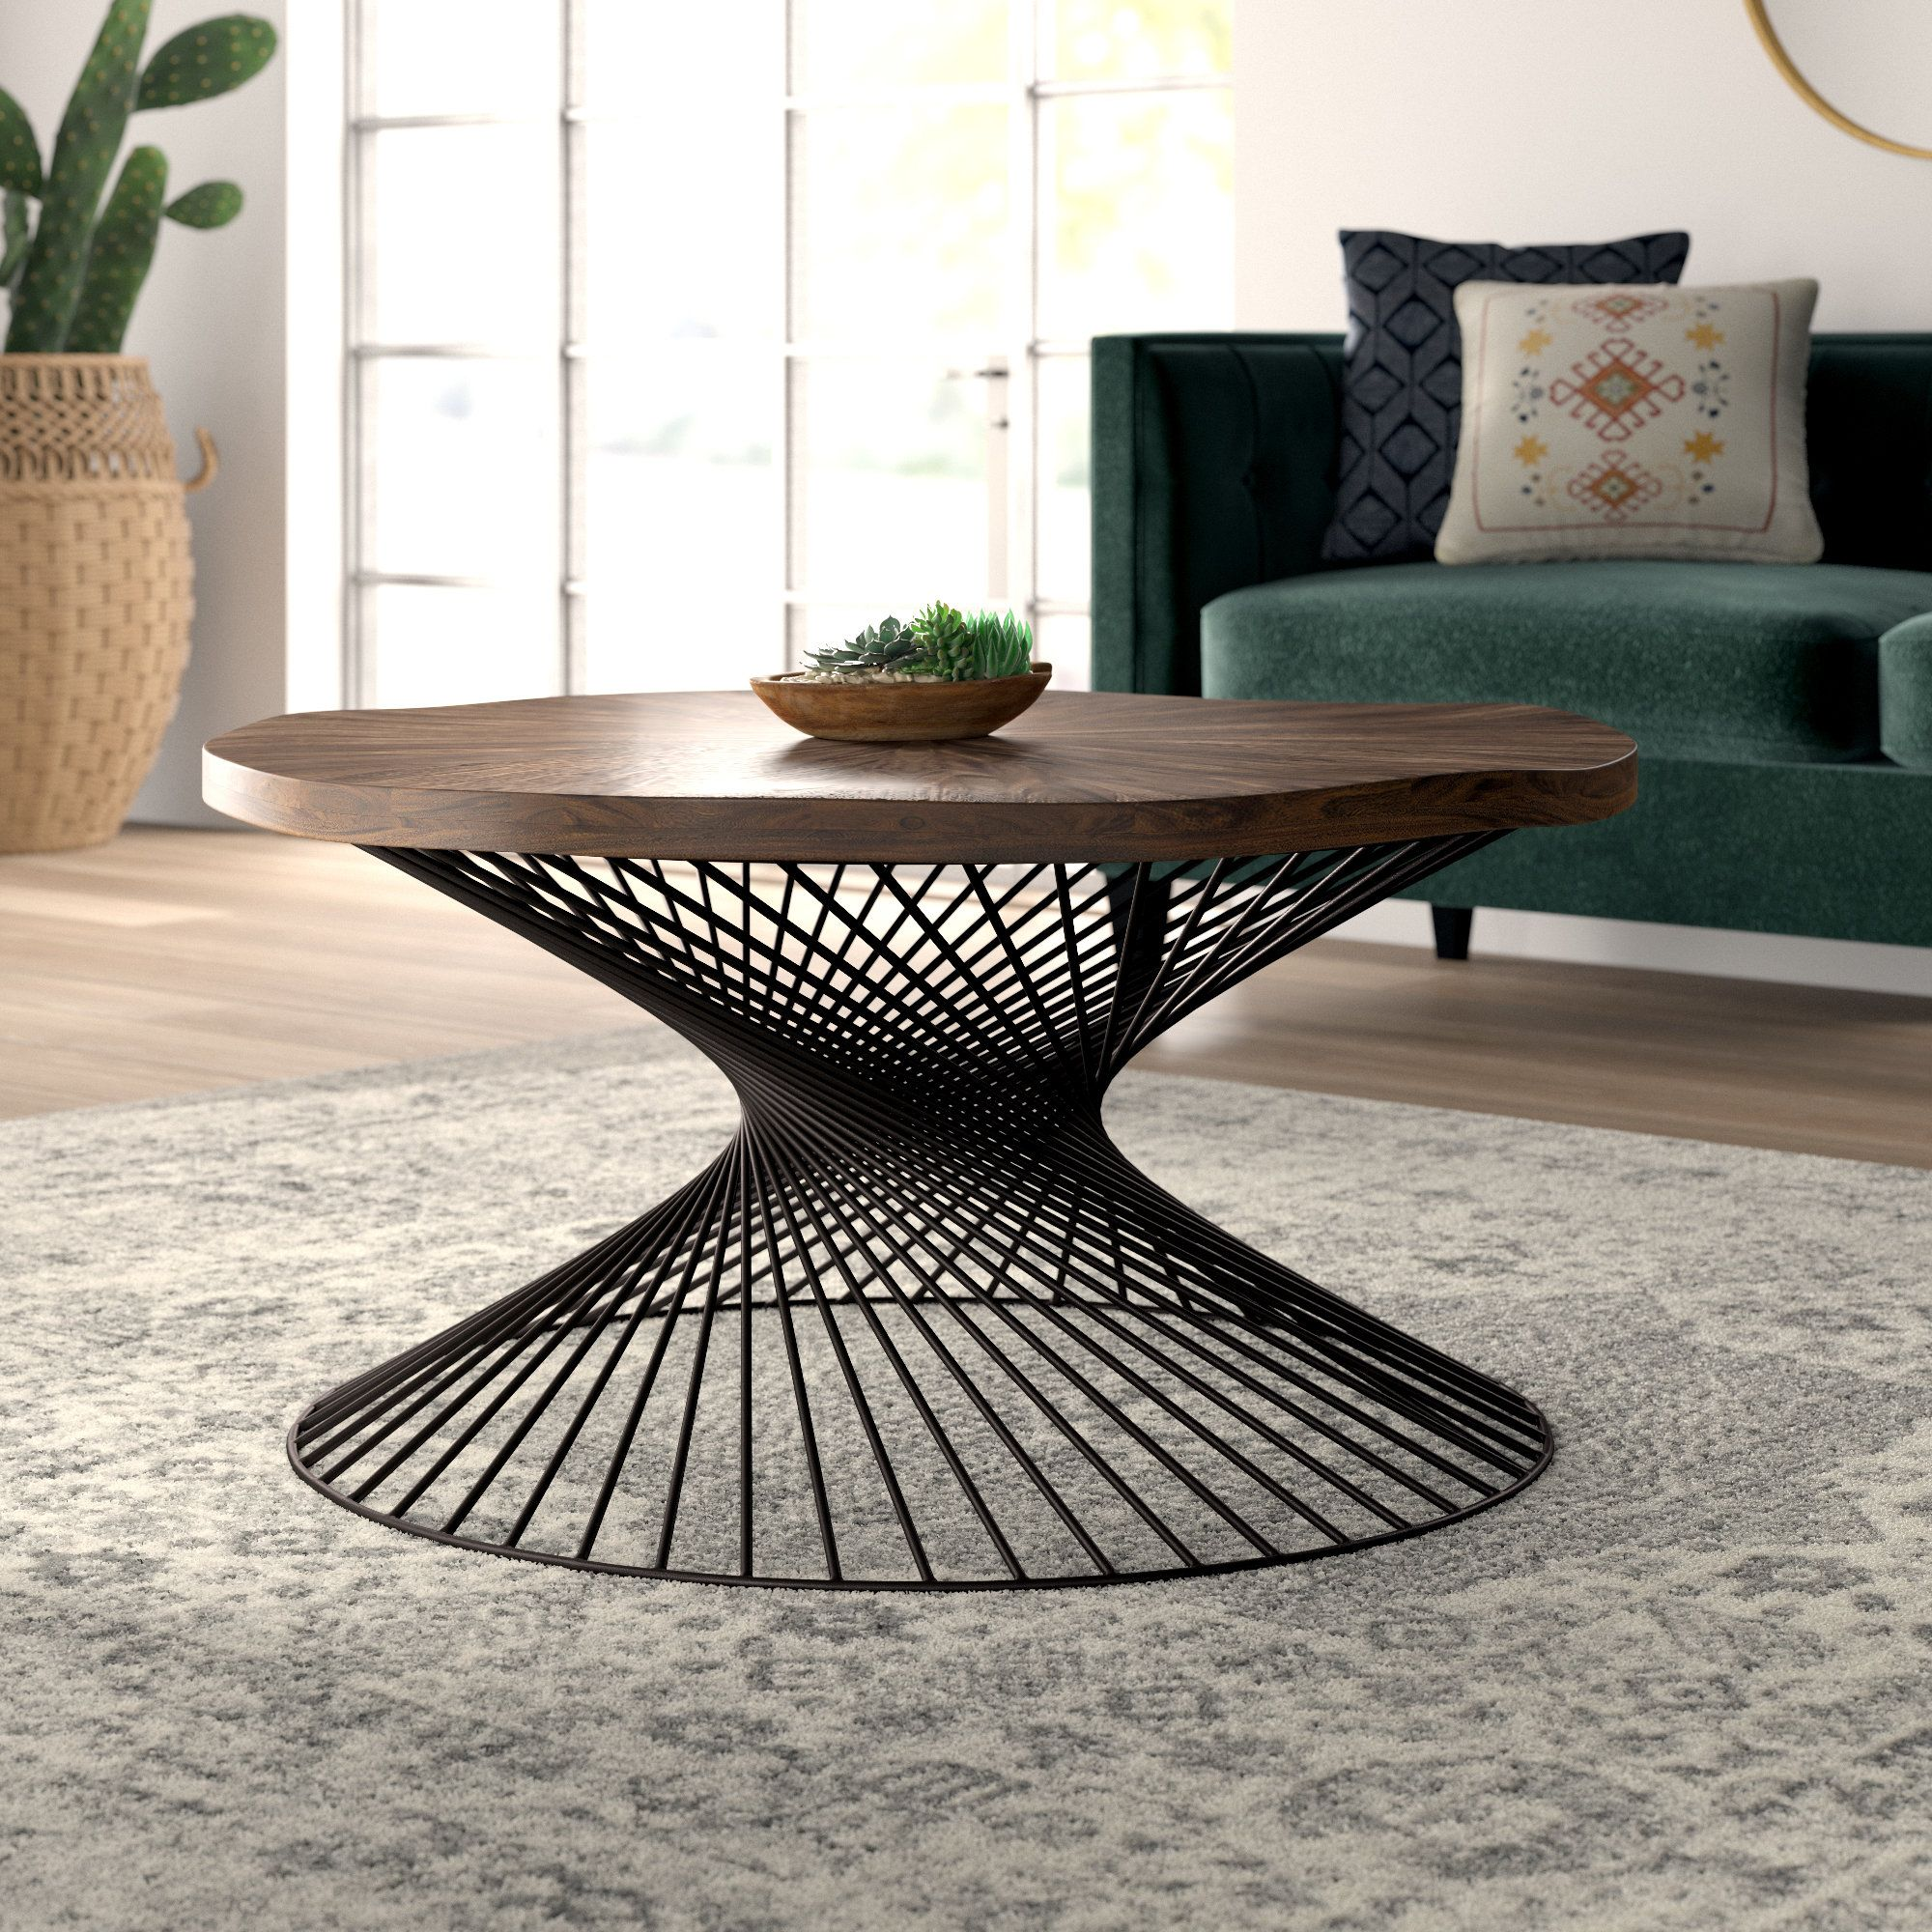 49+ Wire coffee table white inspirations